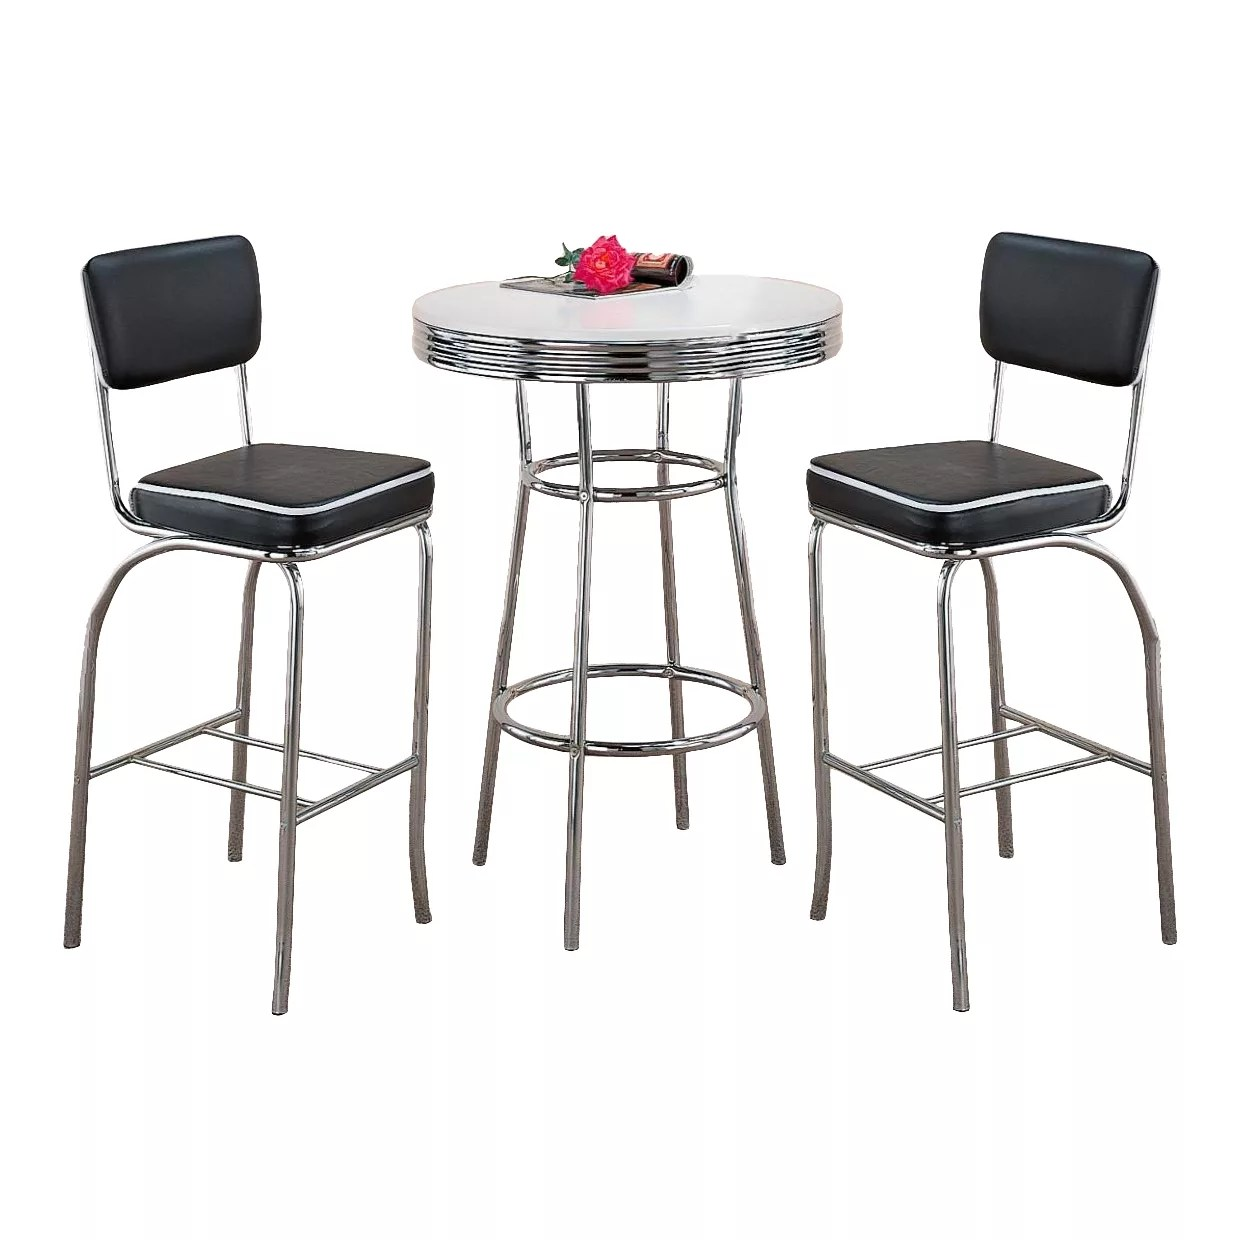 Home / Shop / Table U0026 Chair Sets / Retro Bar Table U0026 Stool Set